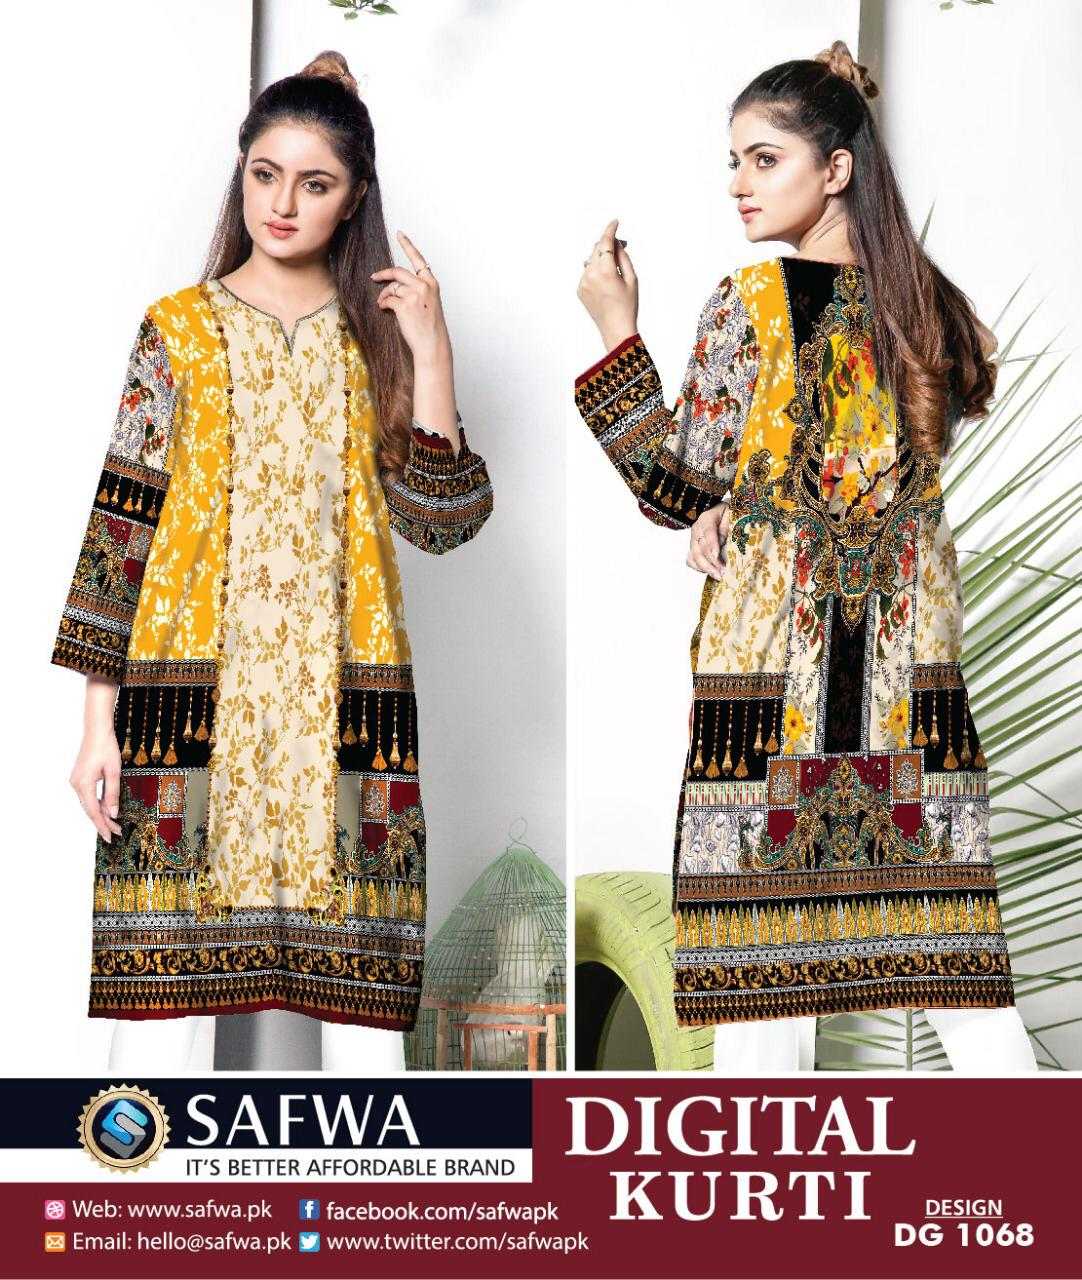 DG1068- SAFWA DIGITAL COTTON PRINT KURTI COLLECTION -SHIRT KURTI KAMEEZ - Shirt-Kurti - Safwa Pakistan Fashion